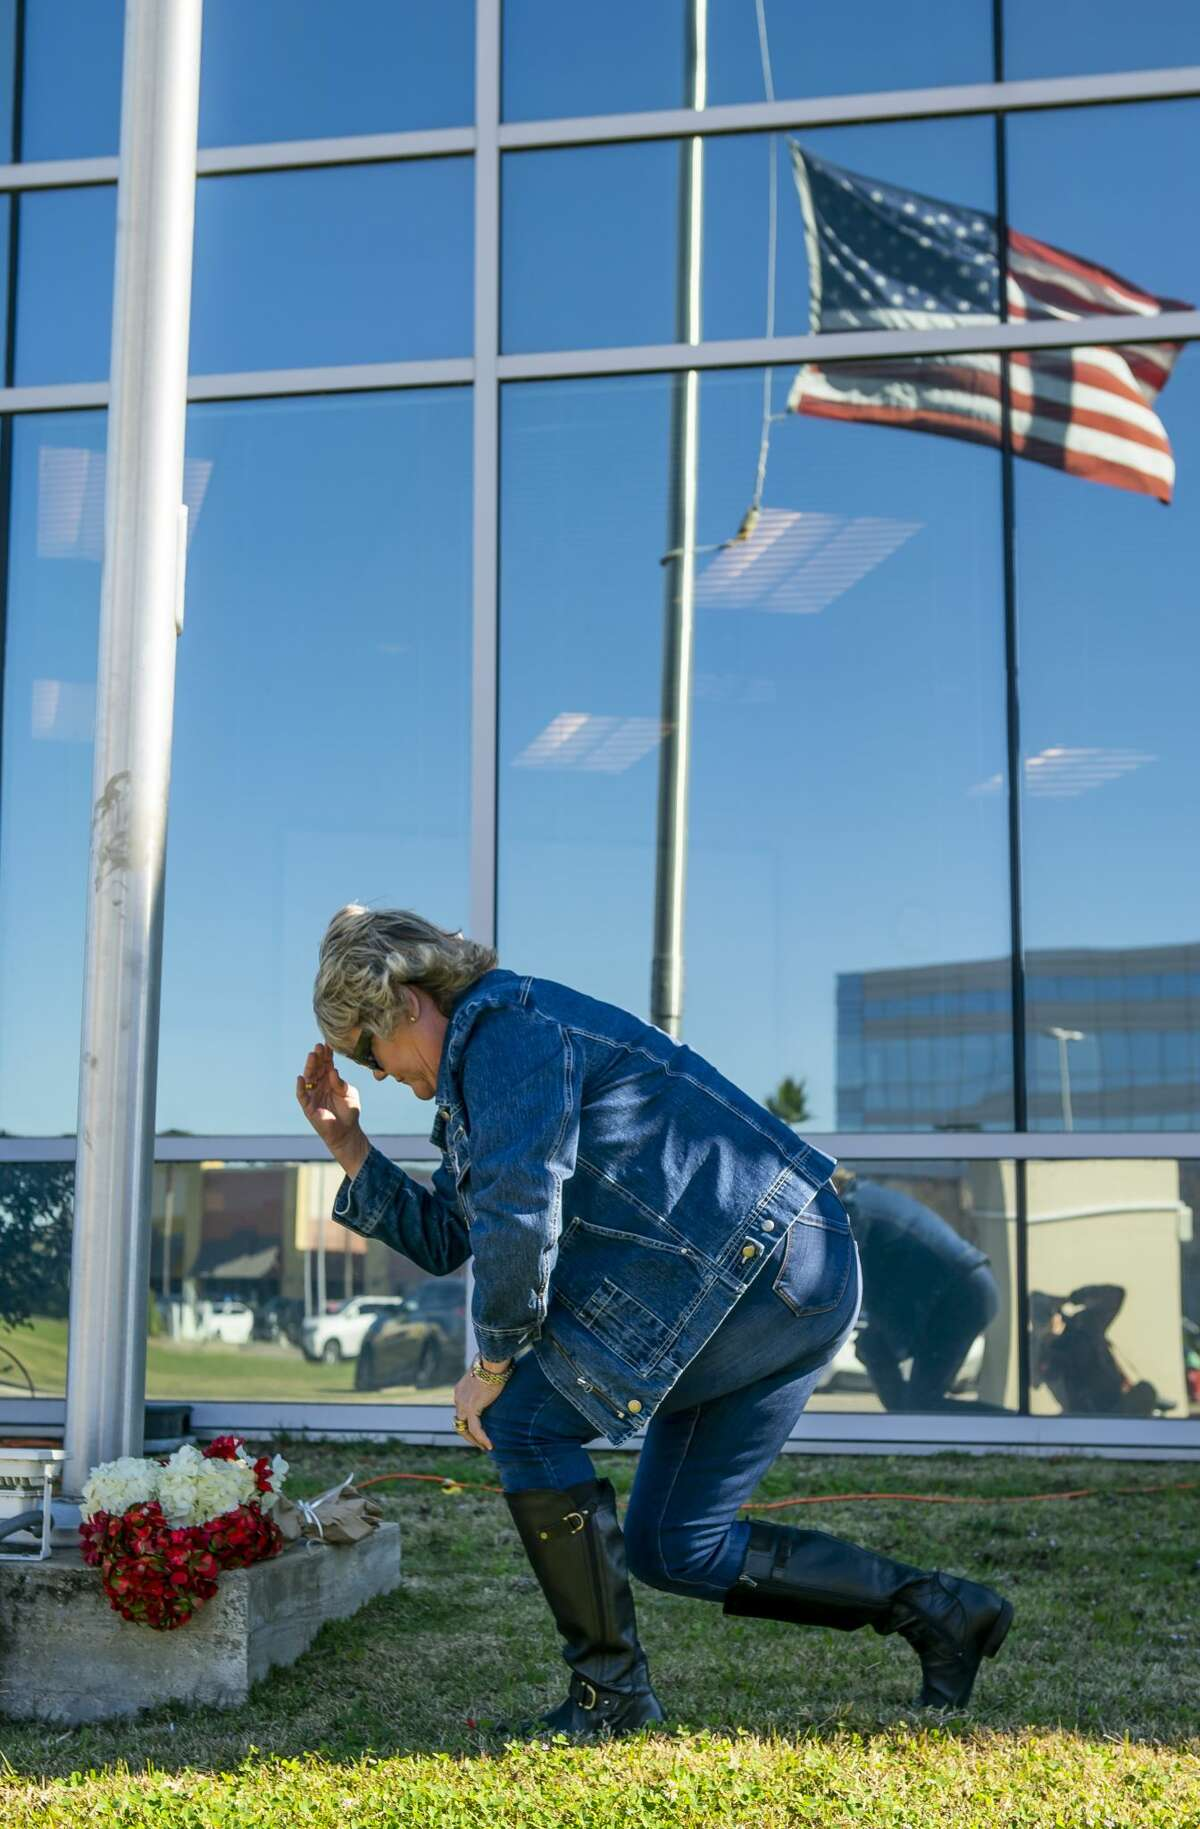 Robin Cortinas, of Taylor Lake, crosses herself after laying flowers at the American Flag at half staff in front of the building that houses the Nassau Bay City Hall and police department, Wednesday, Dec. 11, 2019. Nassau Bay Police Department Sgt. Kaila Sullivan was struck and killed by a car Tuesday night while trying to arrest a suspect. Law enforcement officials are currently searching for the suspect, 21-year-old Tavores Dewayne Henderson, who is now charged with felony murder.